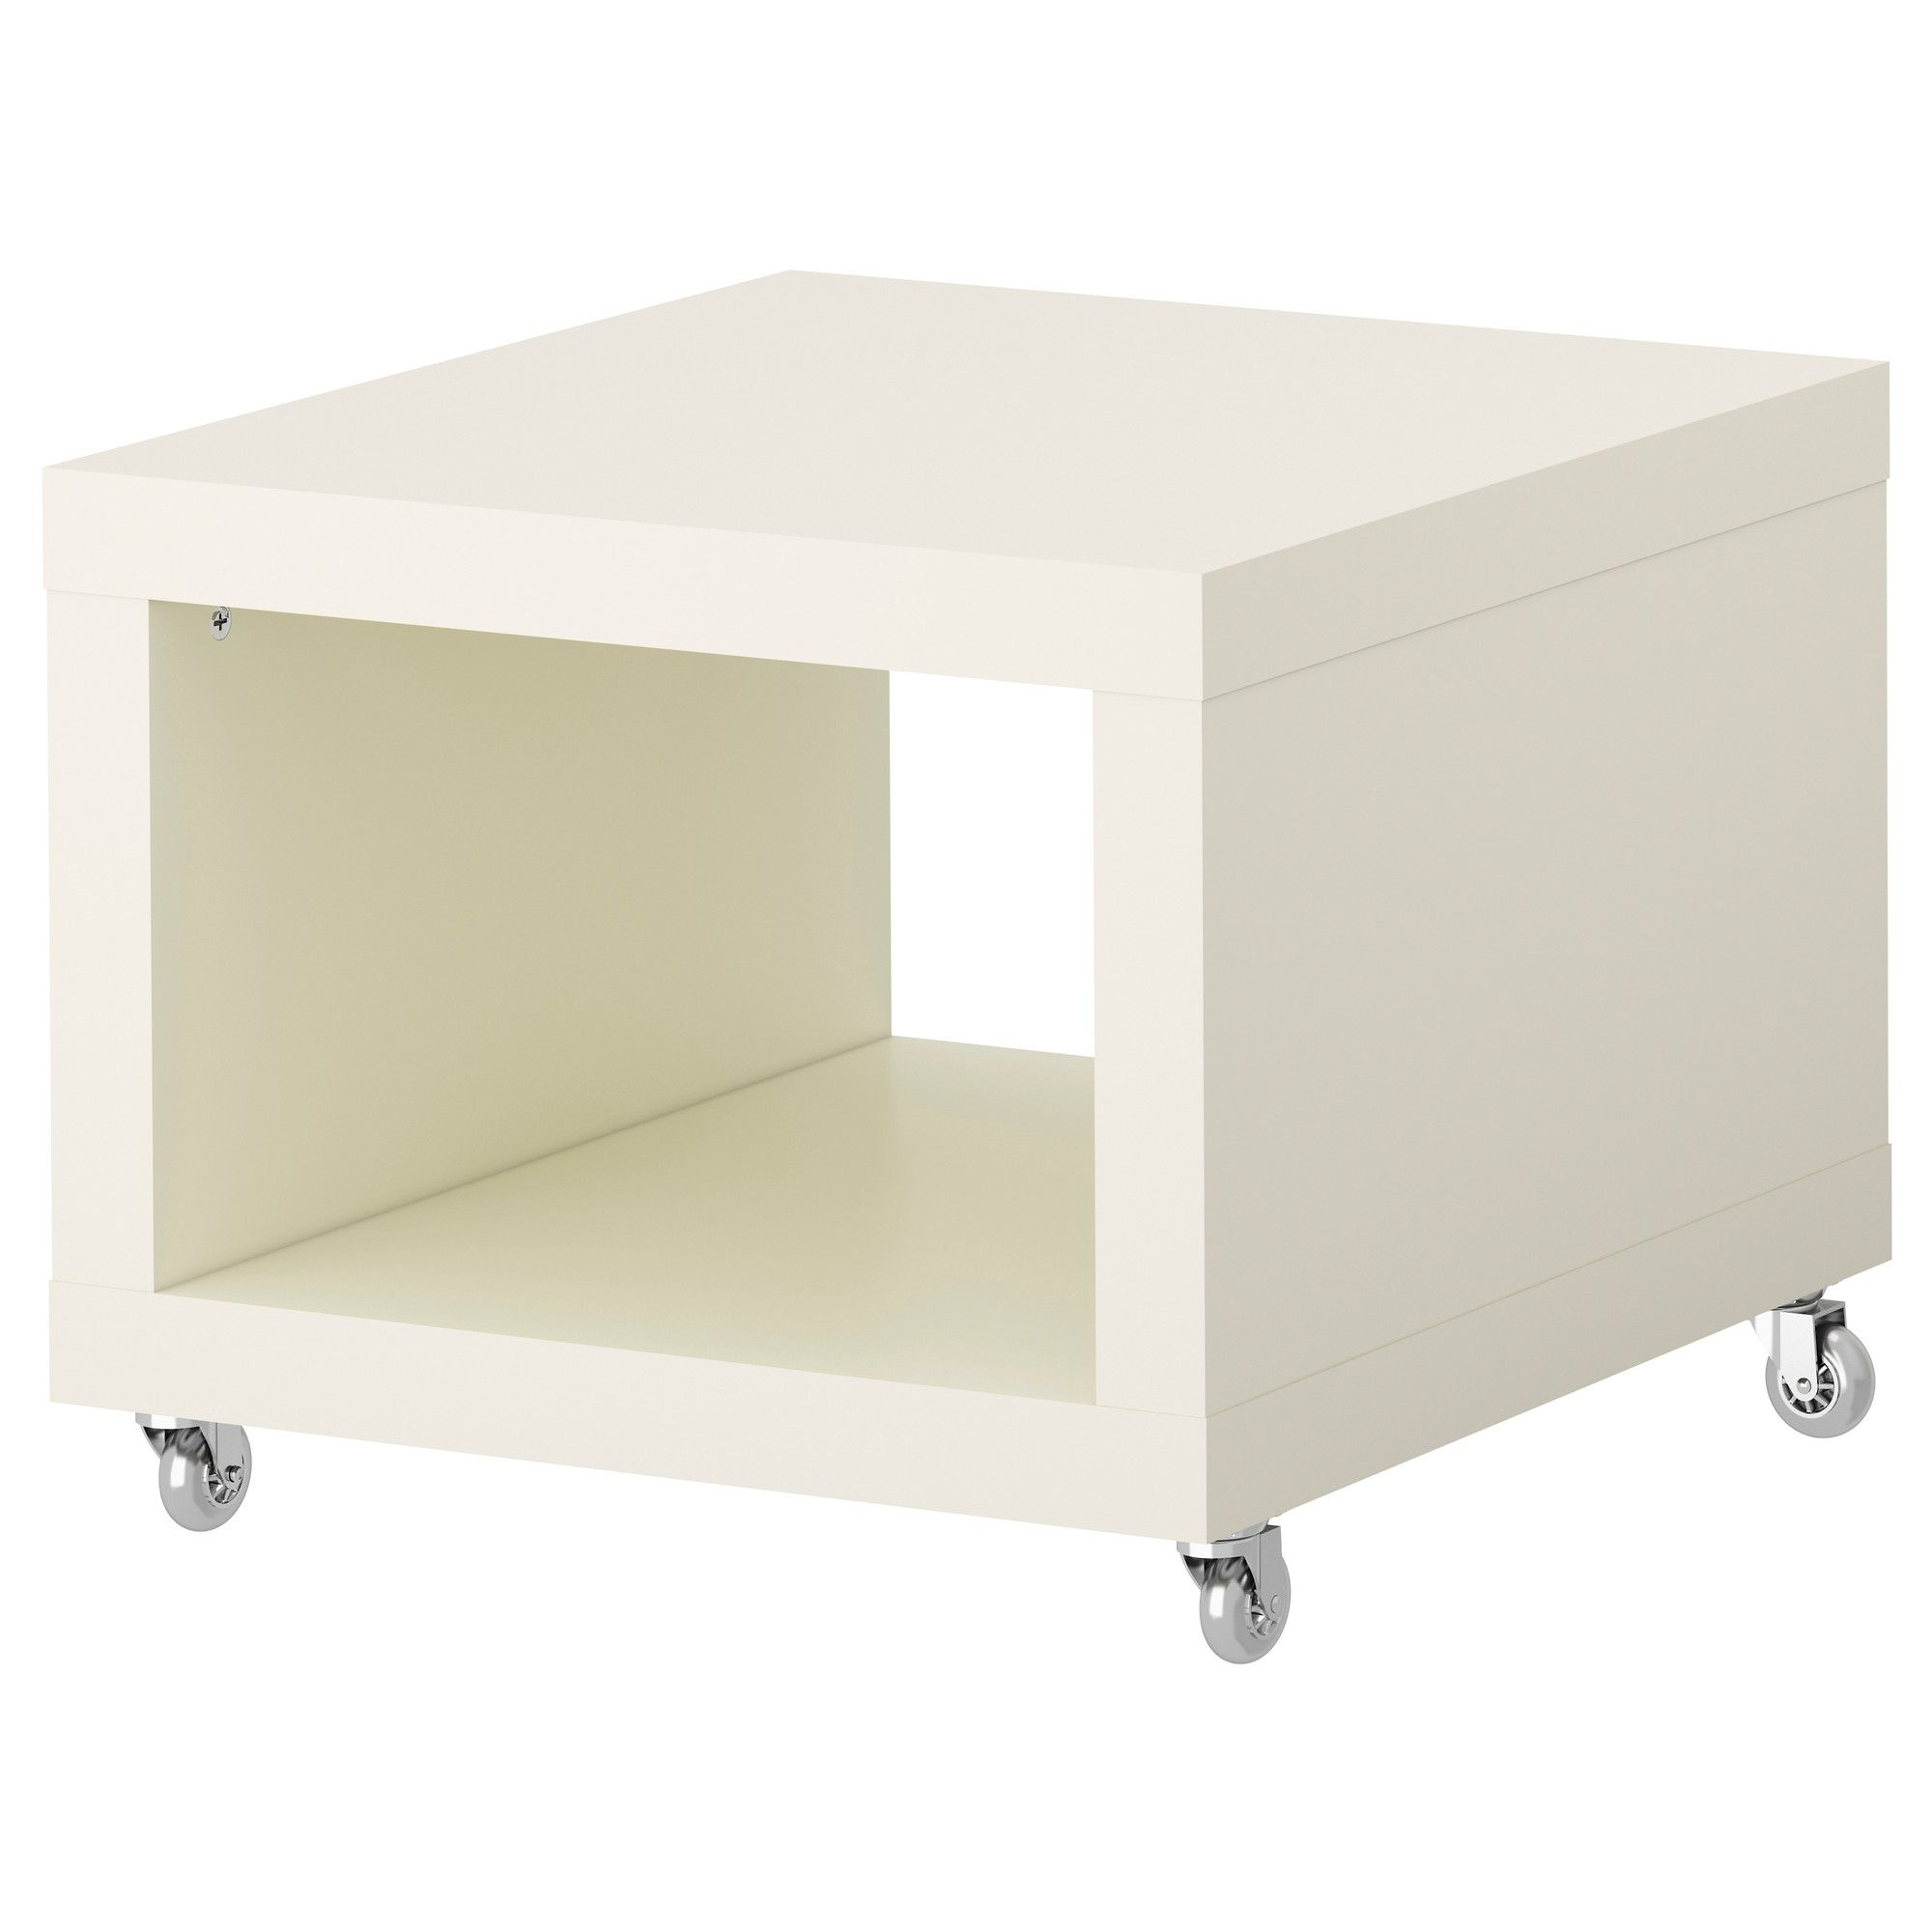 Ikea Sofa With Wheels Carolina Bed Lack Side Table On Casters Use 2 Wide Rubber